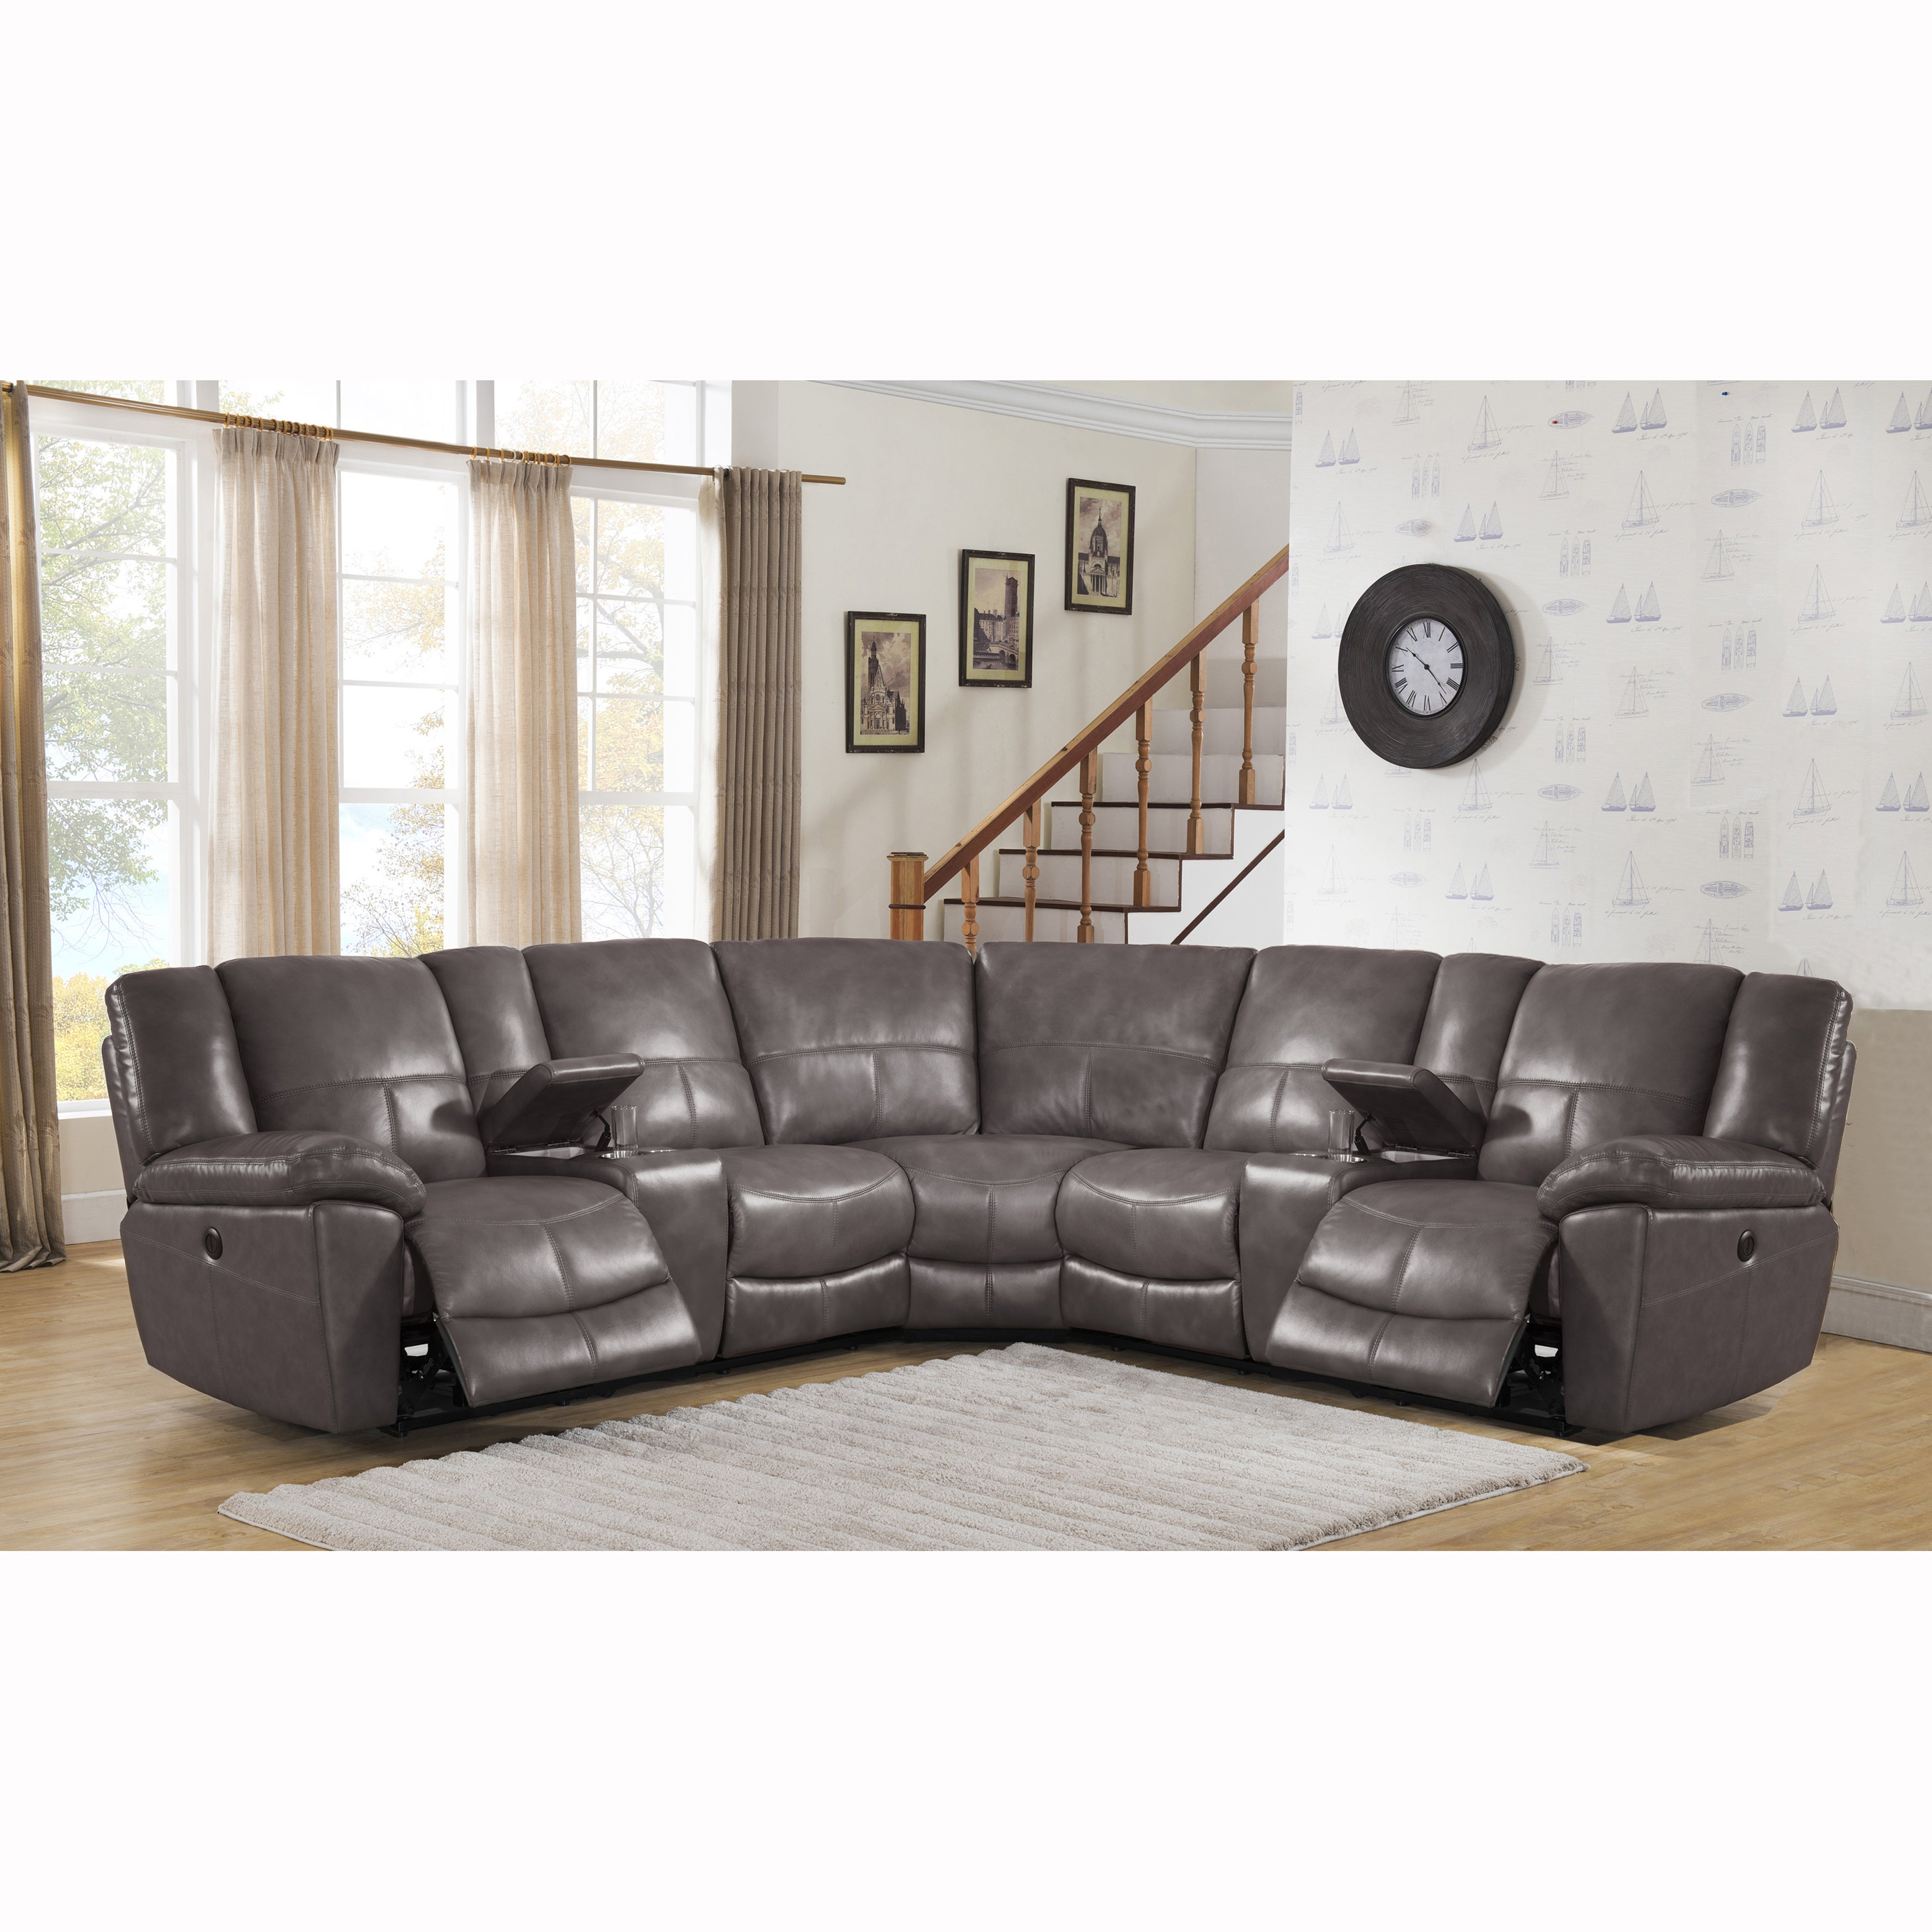 Picture of: Tahoe Premium Top Grain Grey Leather Power Reclining Sectional Sofa 38 X 113 5 X 40 Overstock 12108468